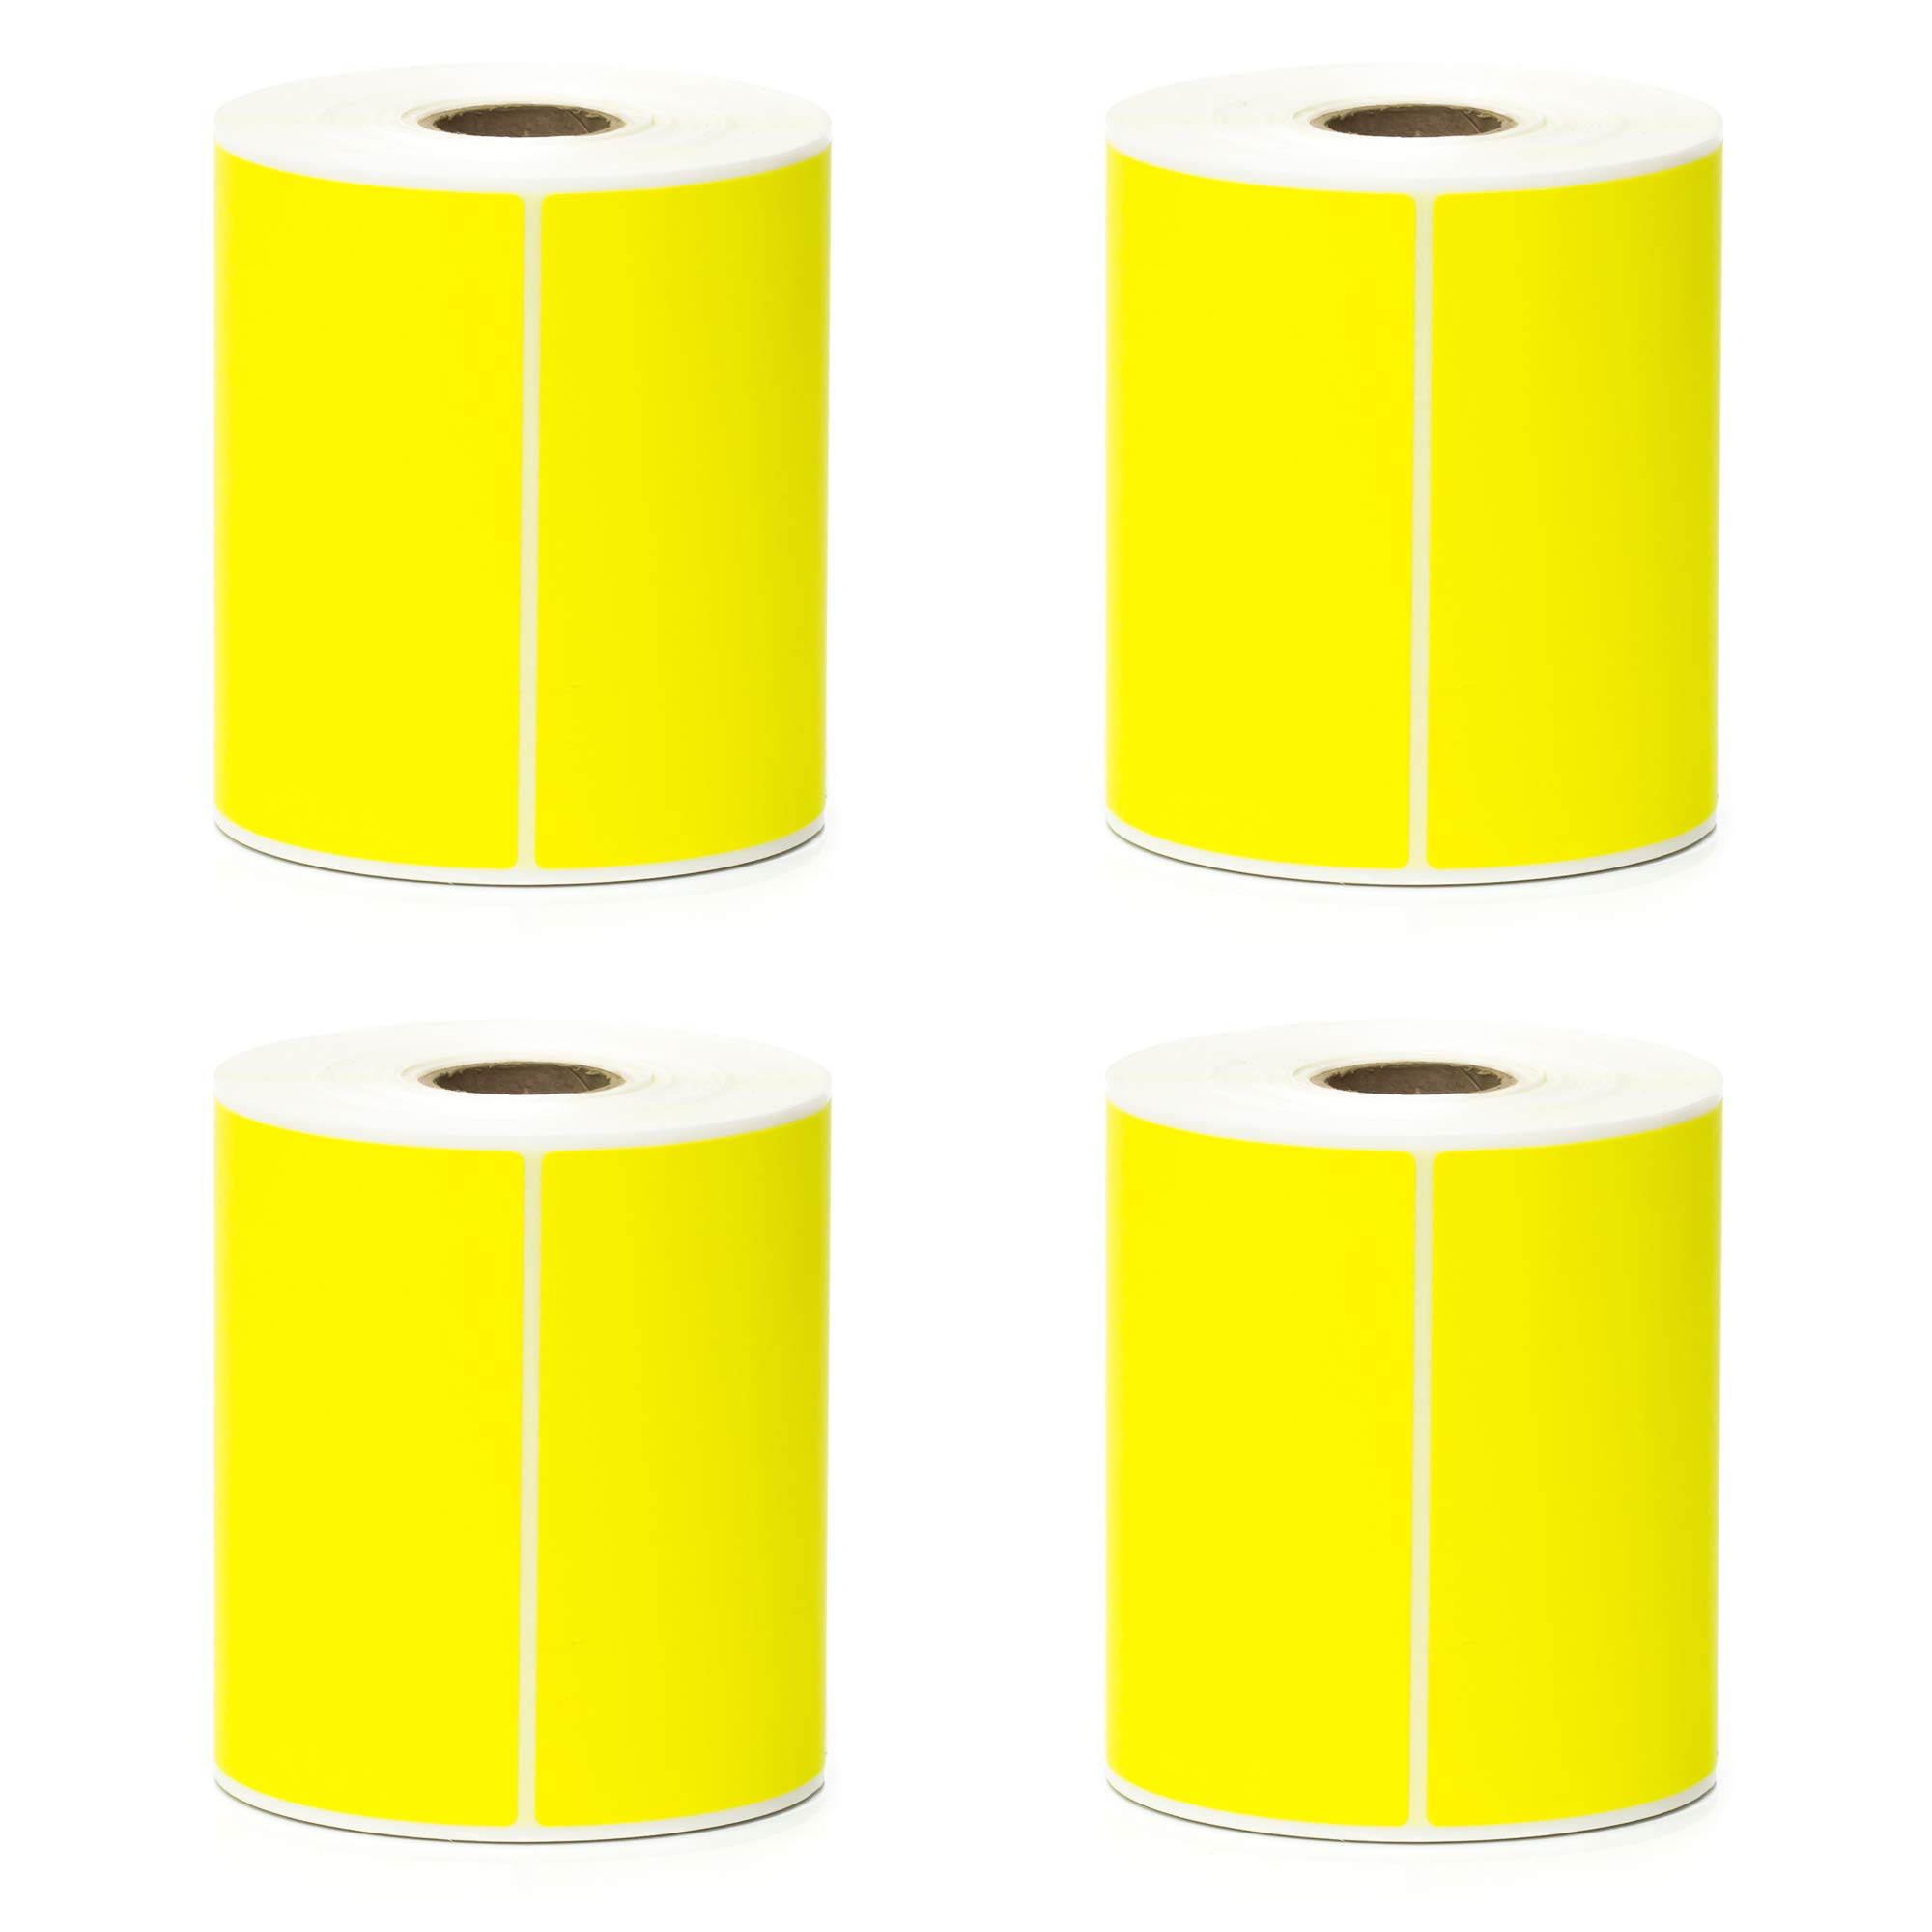 Direct Thermal Labels - 4'' x 6'' - Yellow - 1'' Core - Works with Zebra Thermal Desktop Printers, Datamax, Sato, Intermec and Honeywell Printers - Made in USA